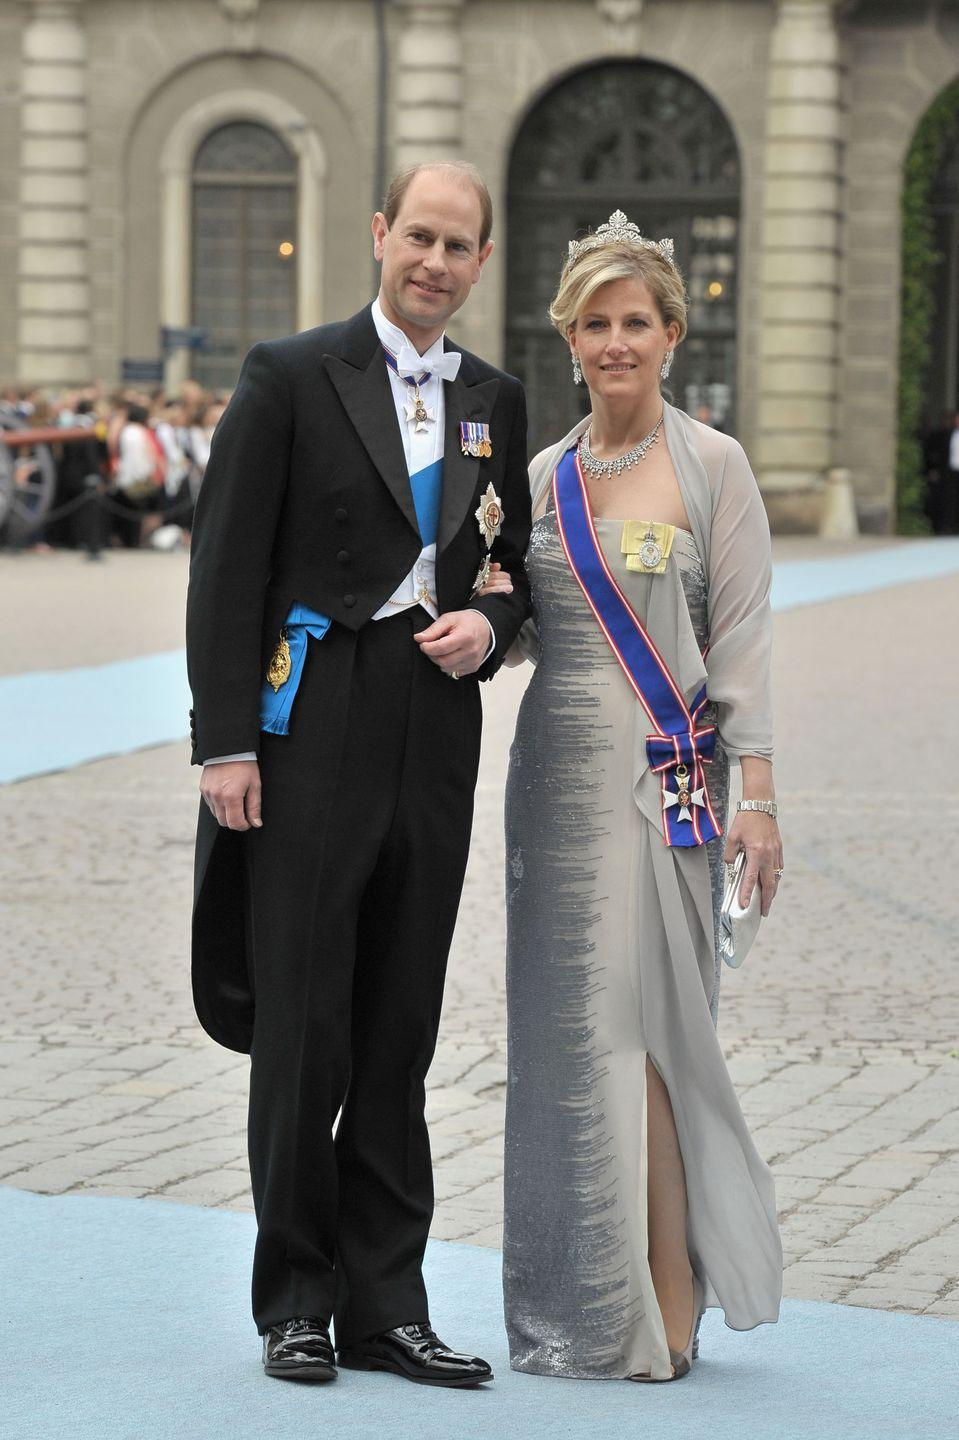 <p>Sophie and Prince Edward, the Earl of Wessex, began dating in 1993, were married in 1999, and now have two children, Lady Louise Windsor and James, Viscount Severn.</p>